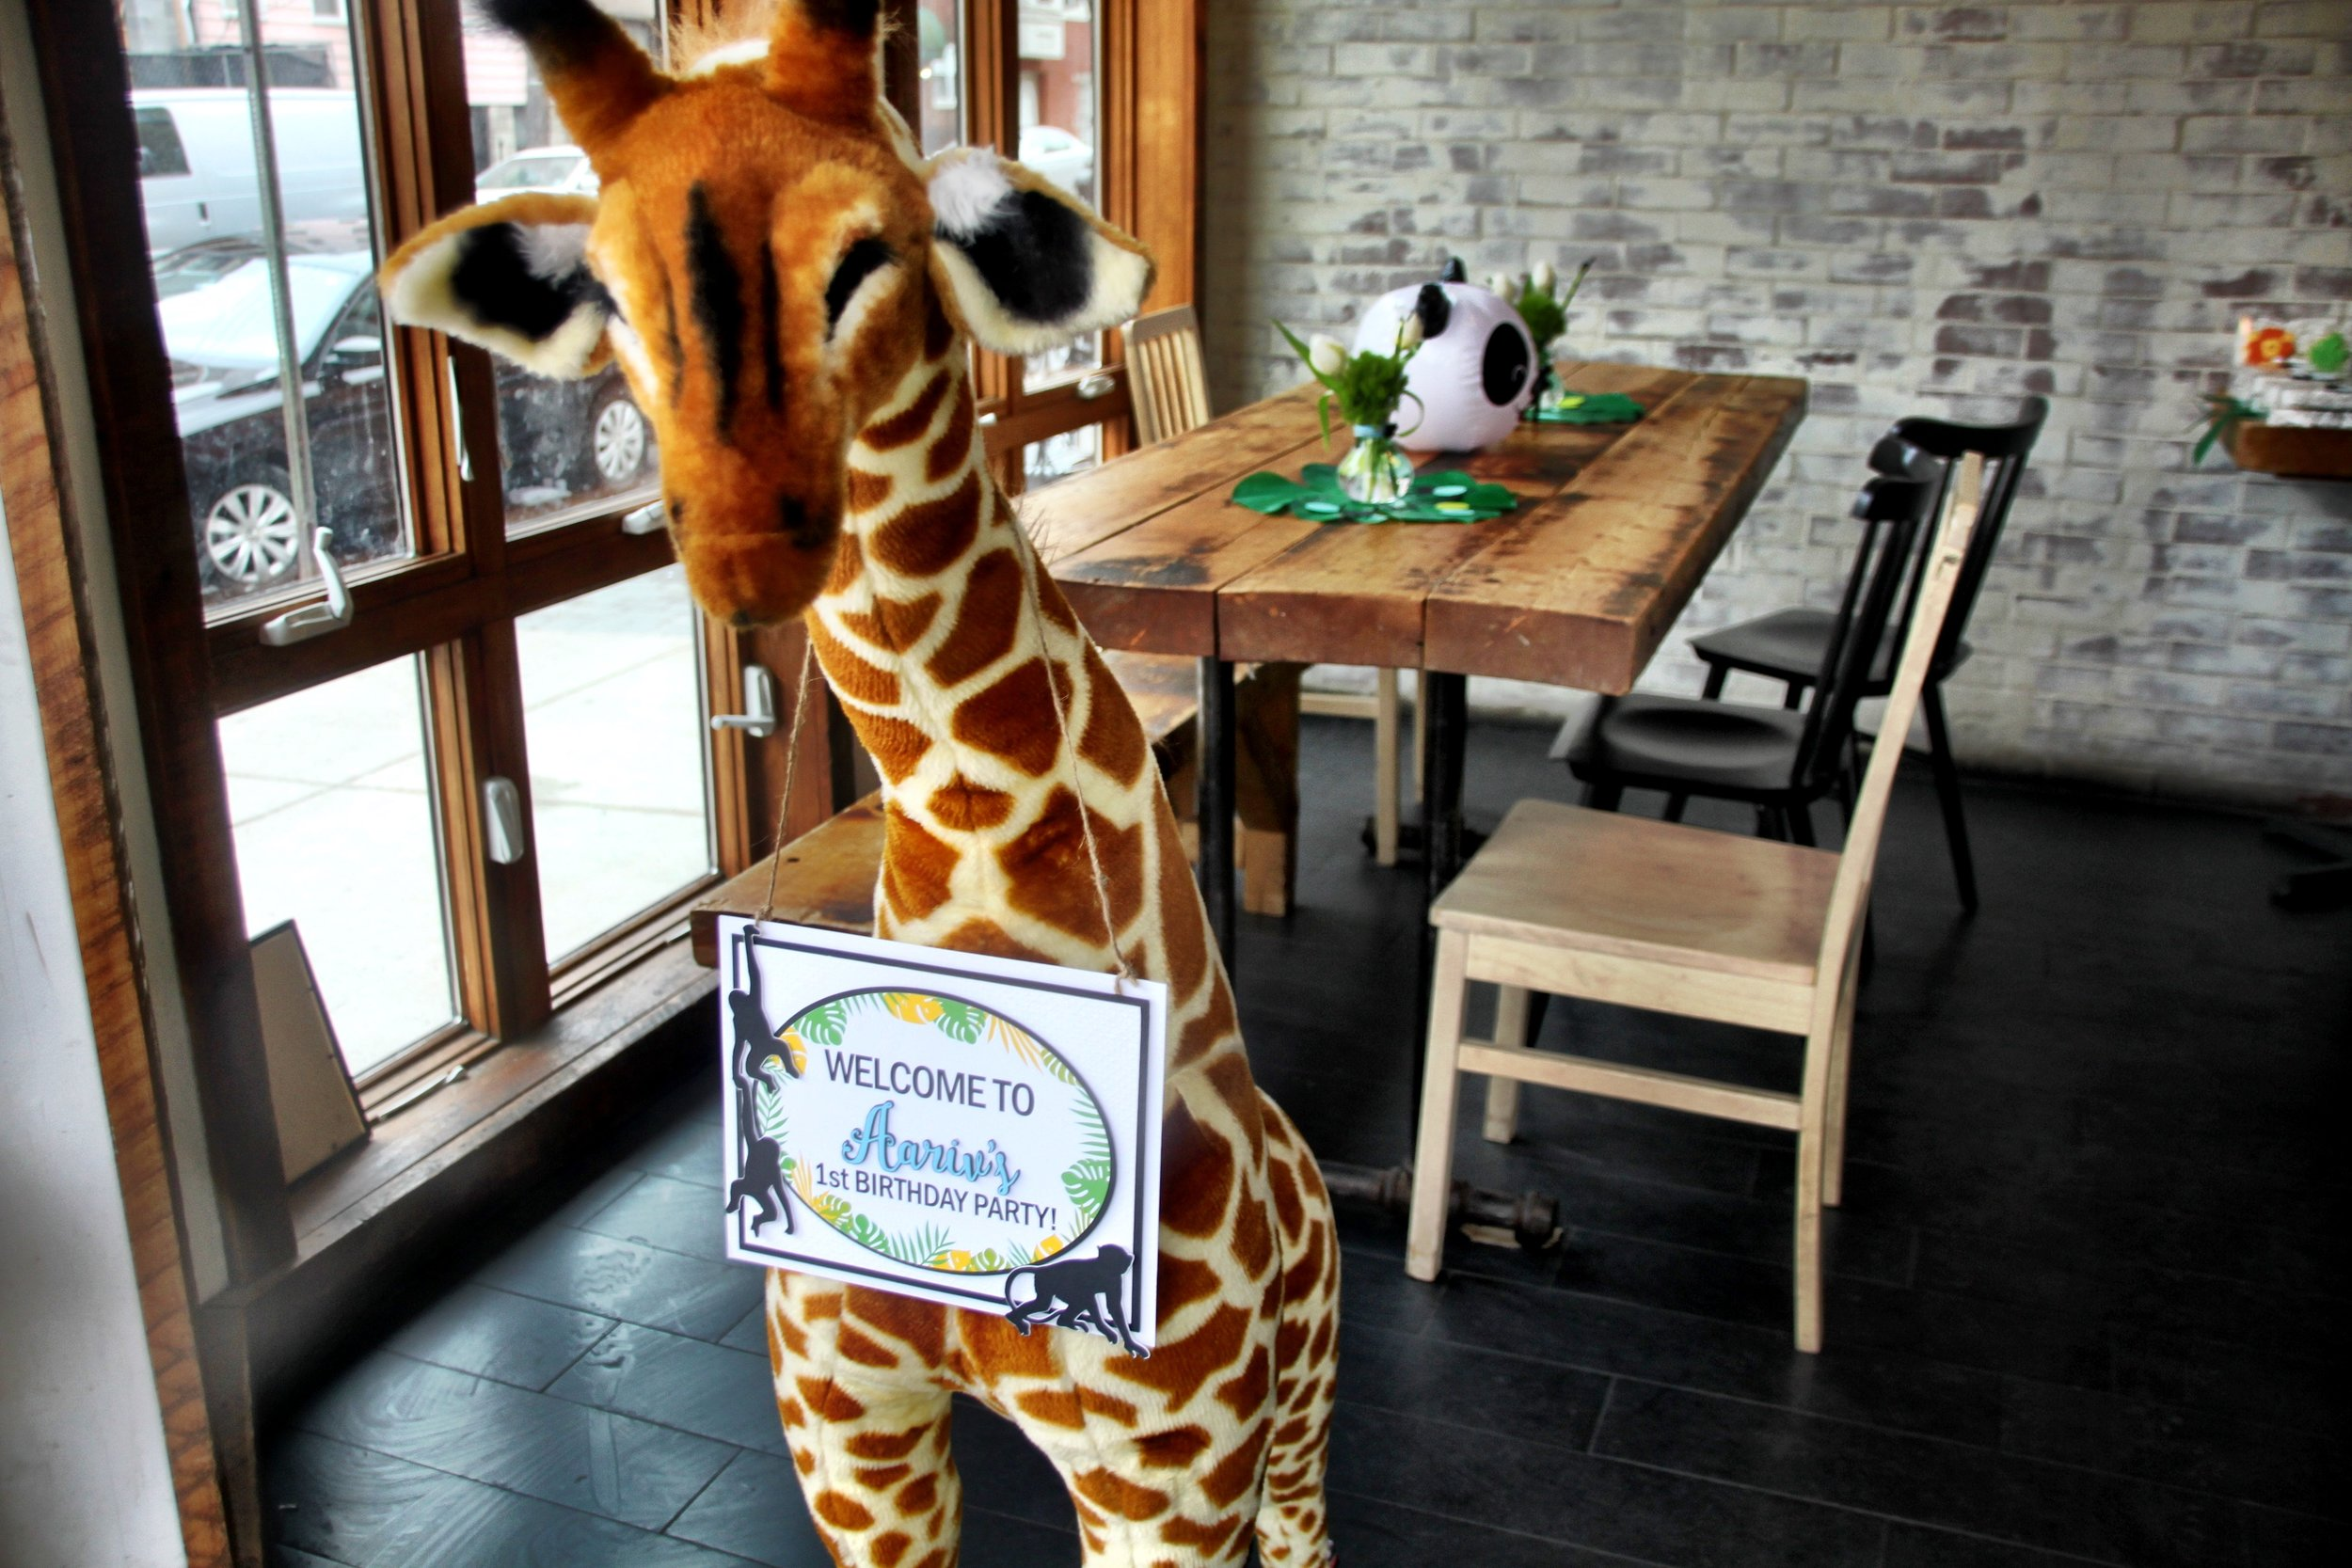 The welcome Giraffe!